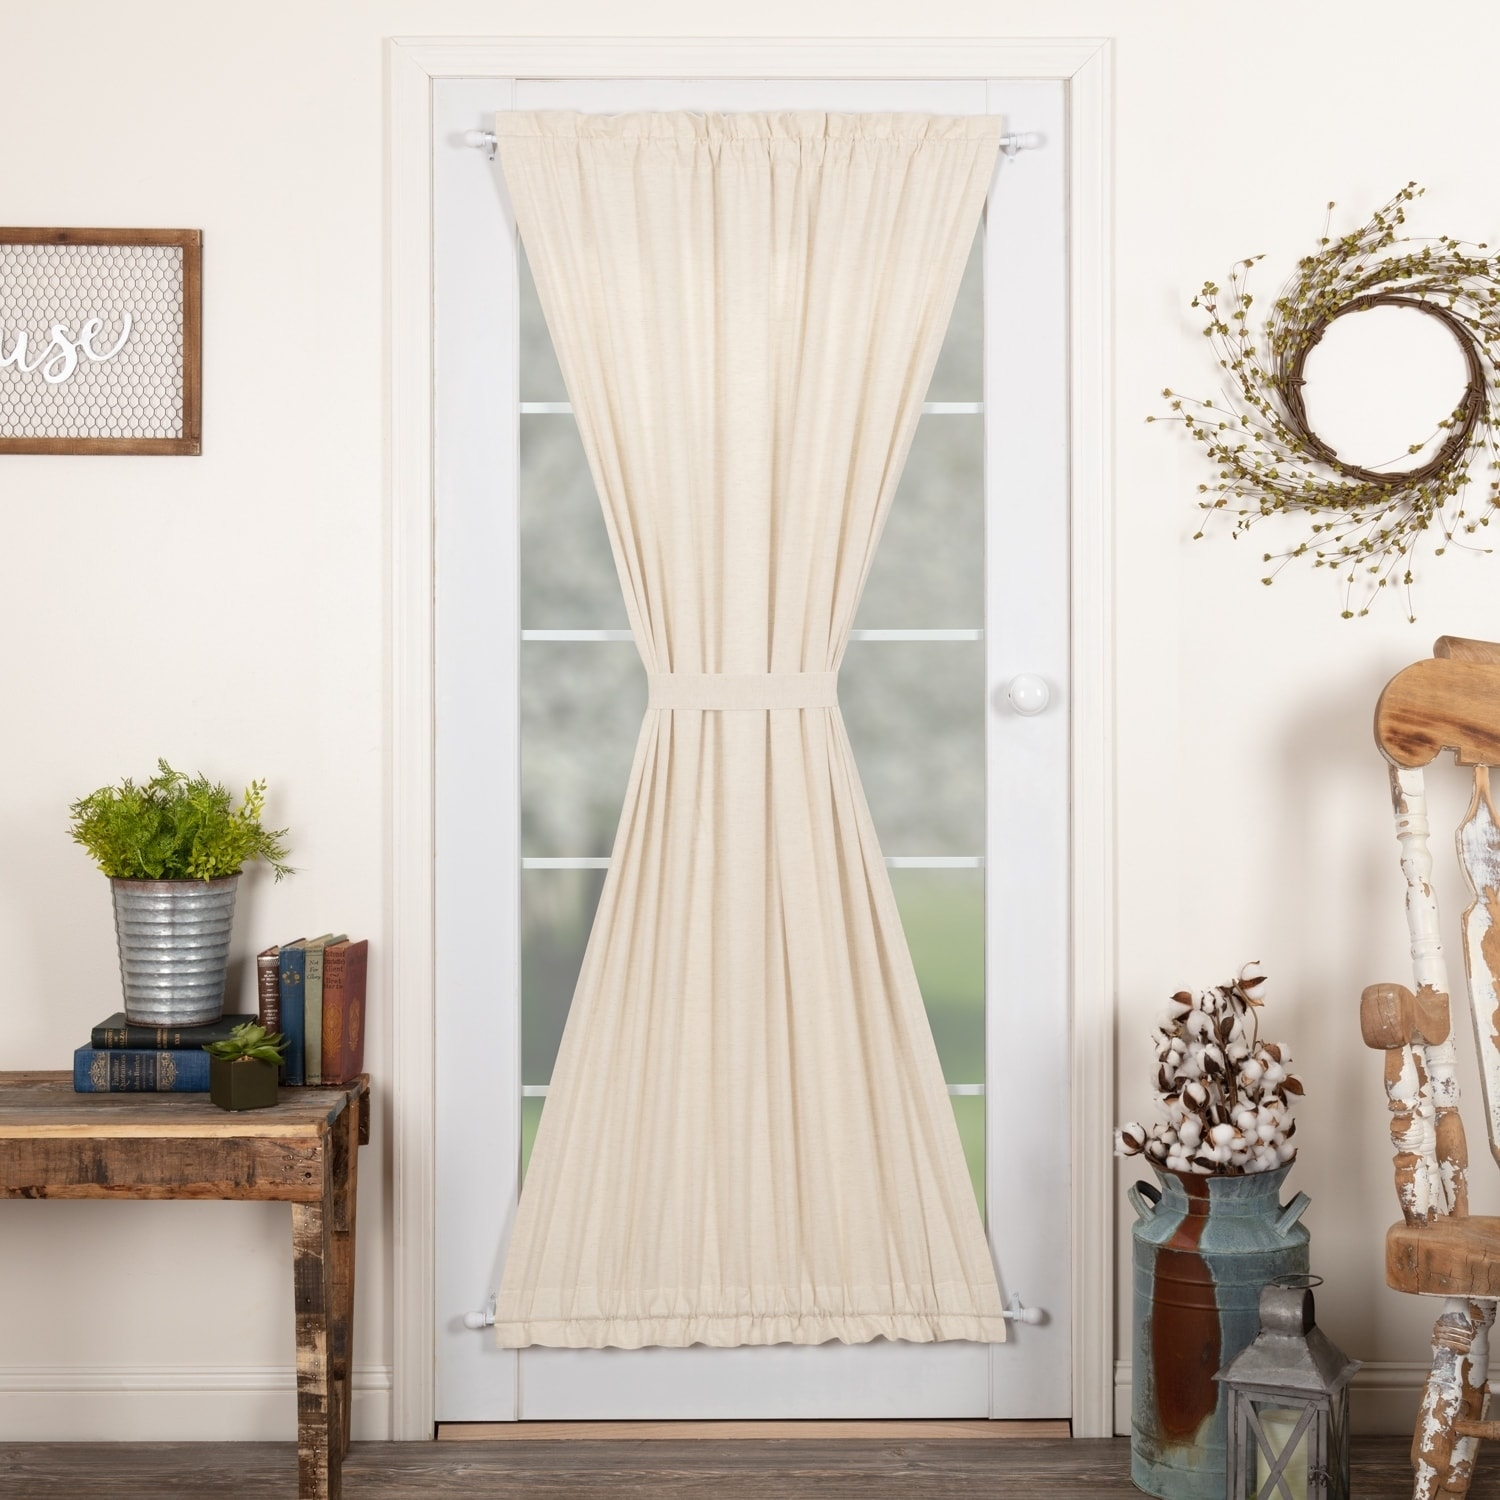 Farmhouse Curtains Vhc Simple Life Flax Door Panel Rod Pocket Cotton Linen Blend Solid Color Flax N A Dark Creme Vhc Brands N A Dark Creme 72 Inches In 2019 Door Panel